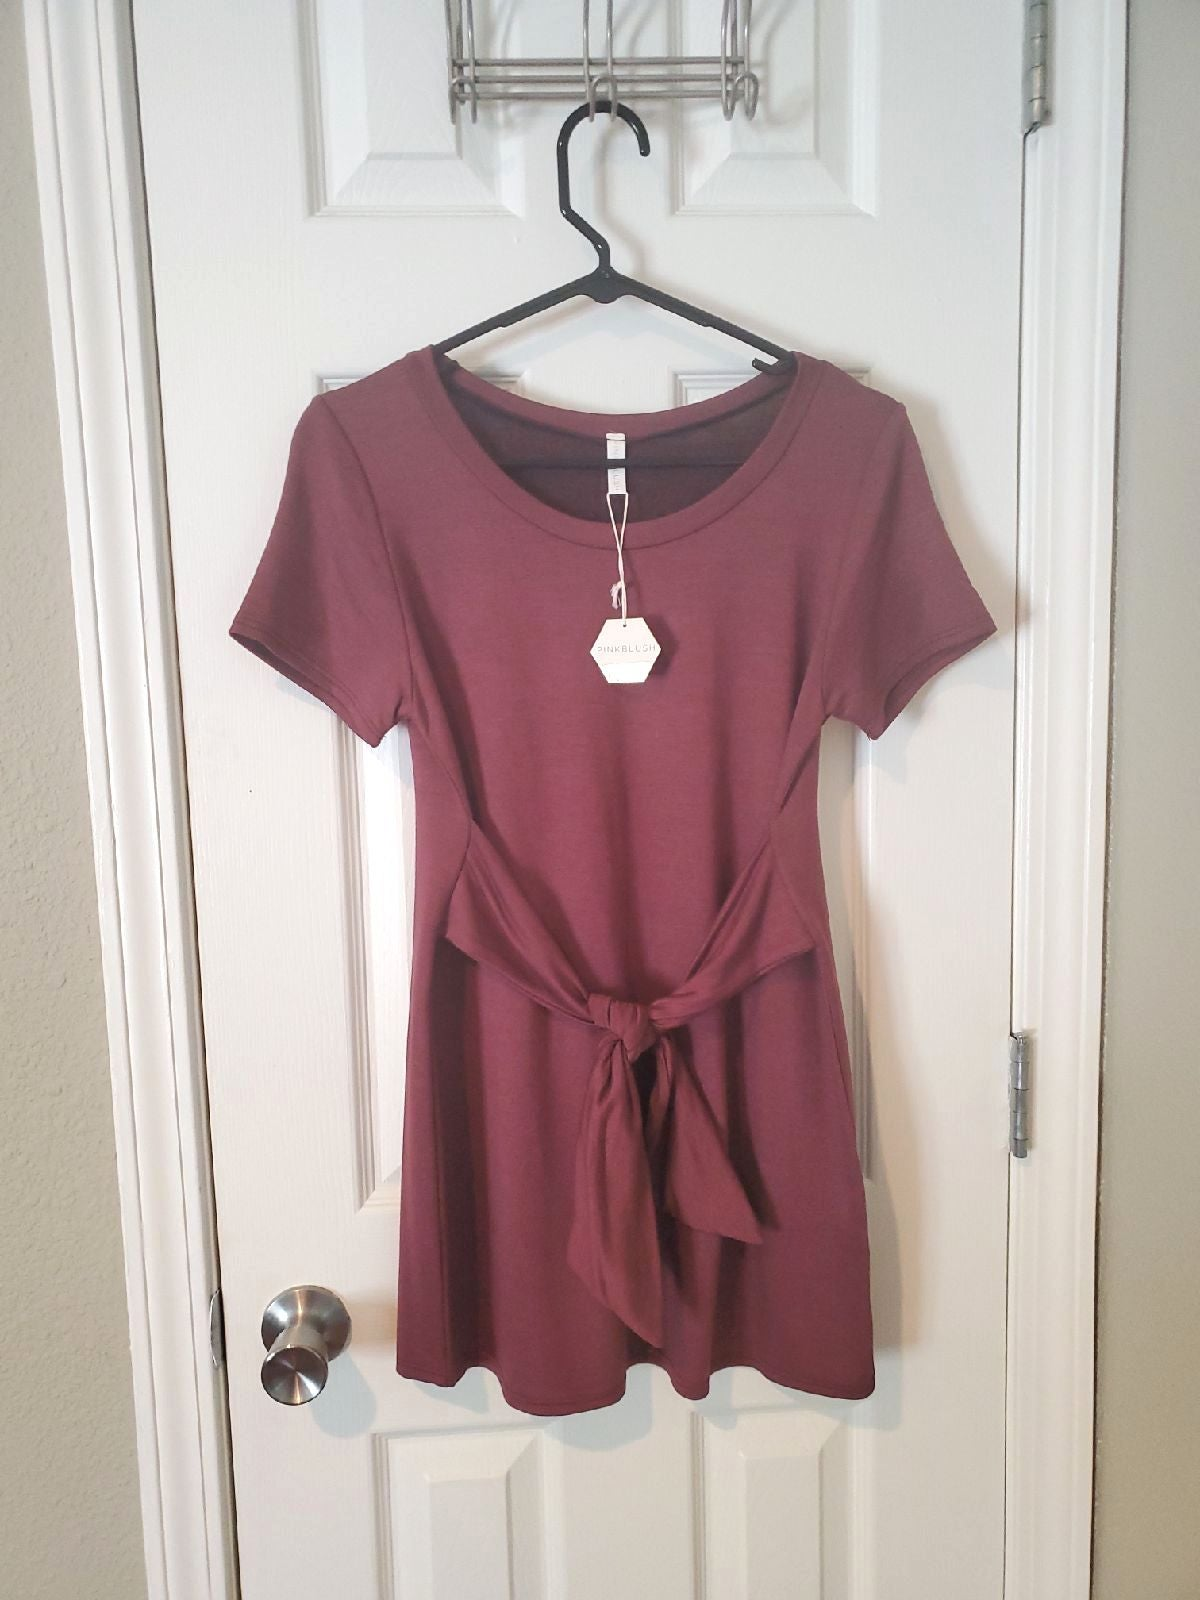 Pinkblush Small Red Short Sleeve Top